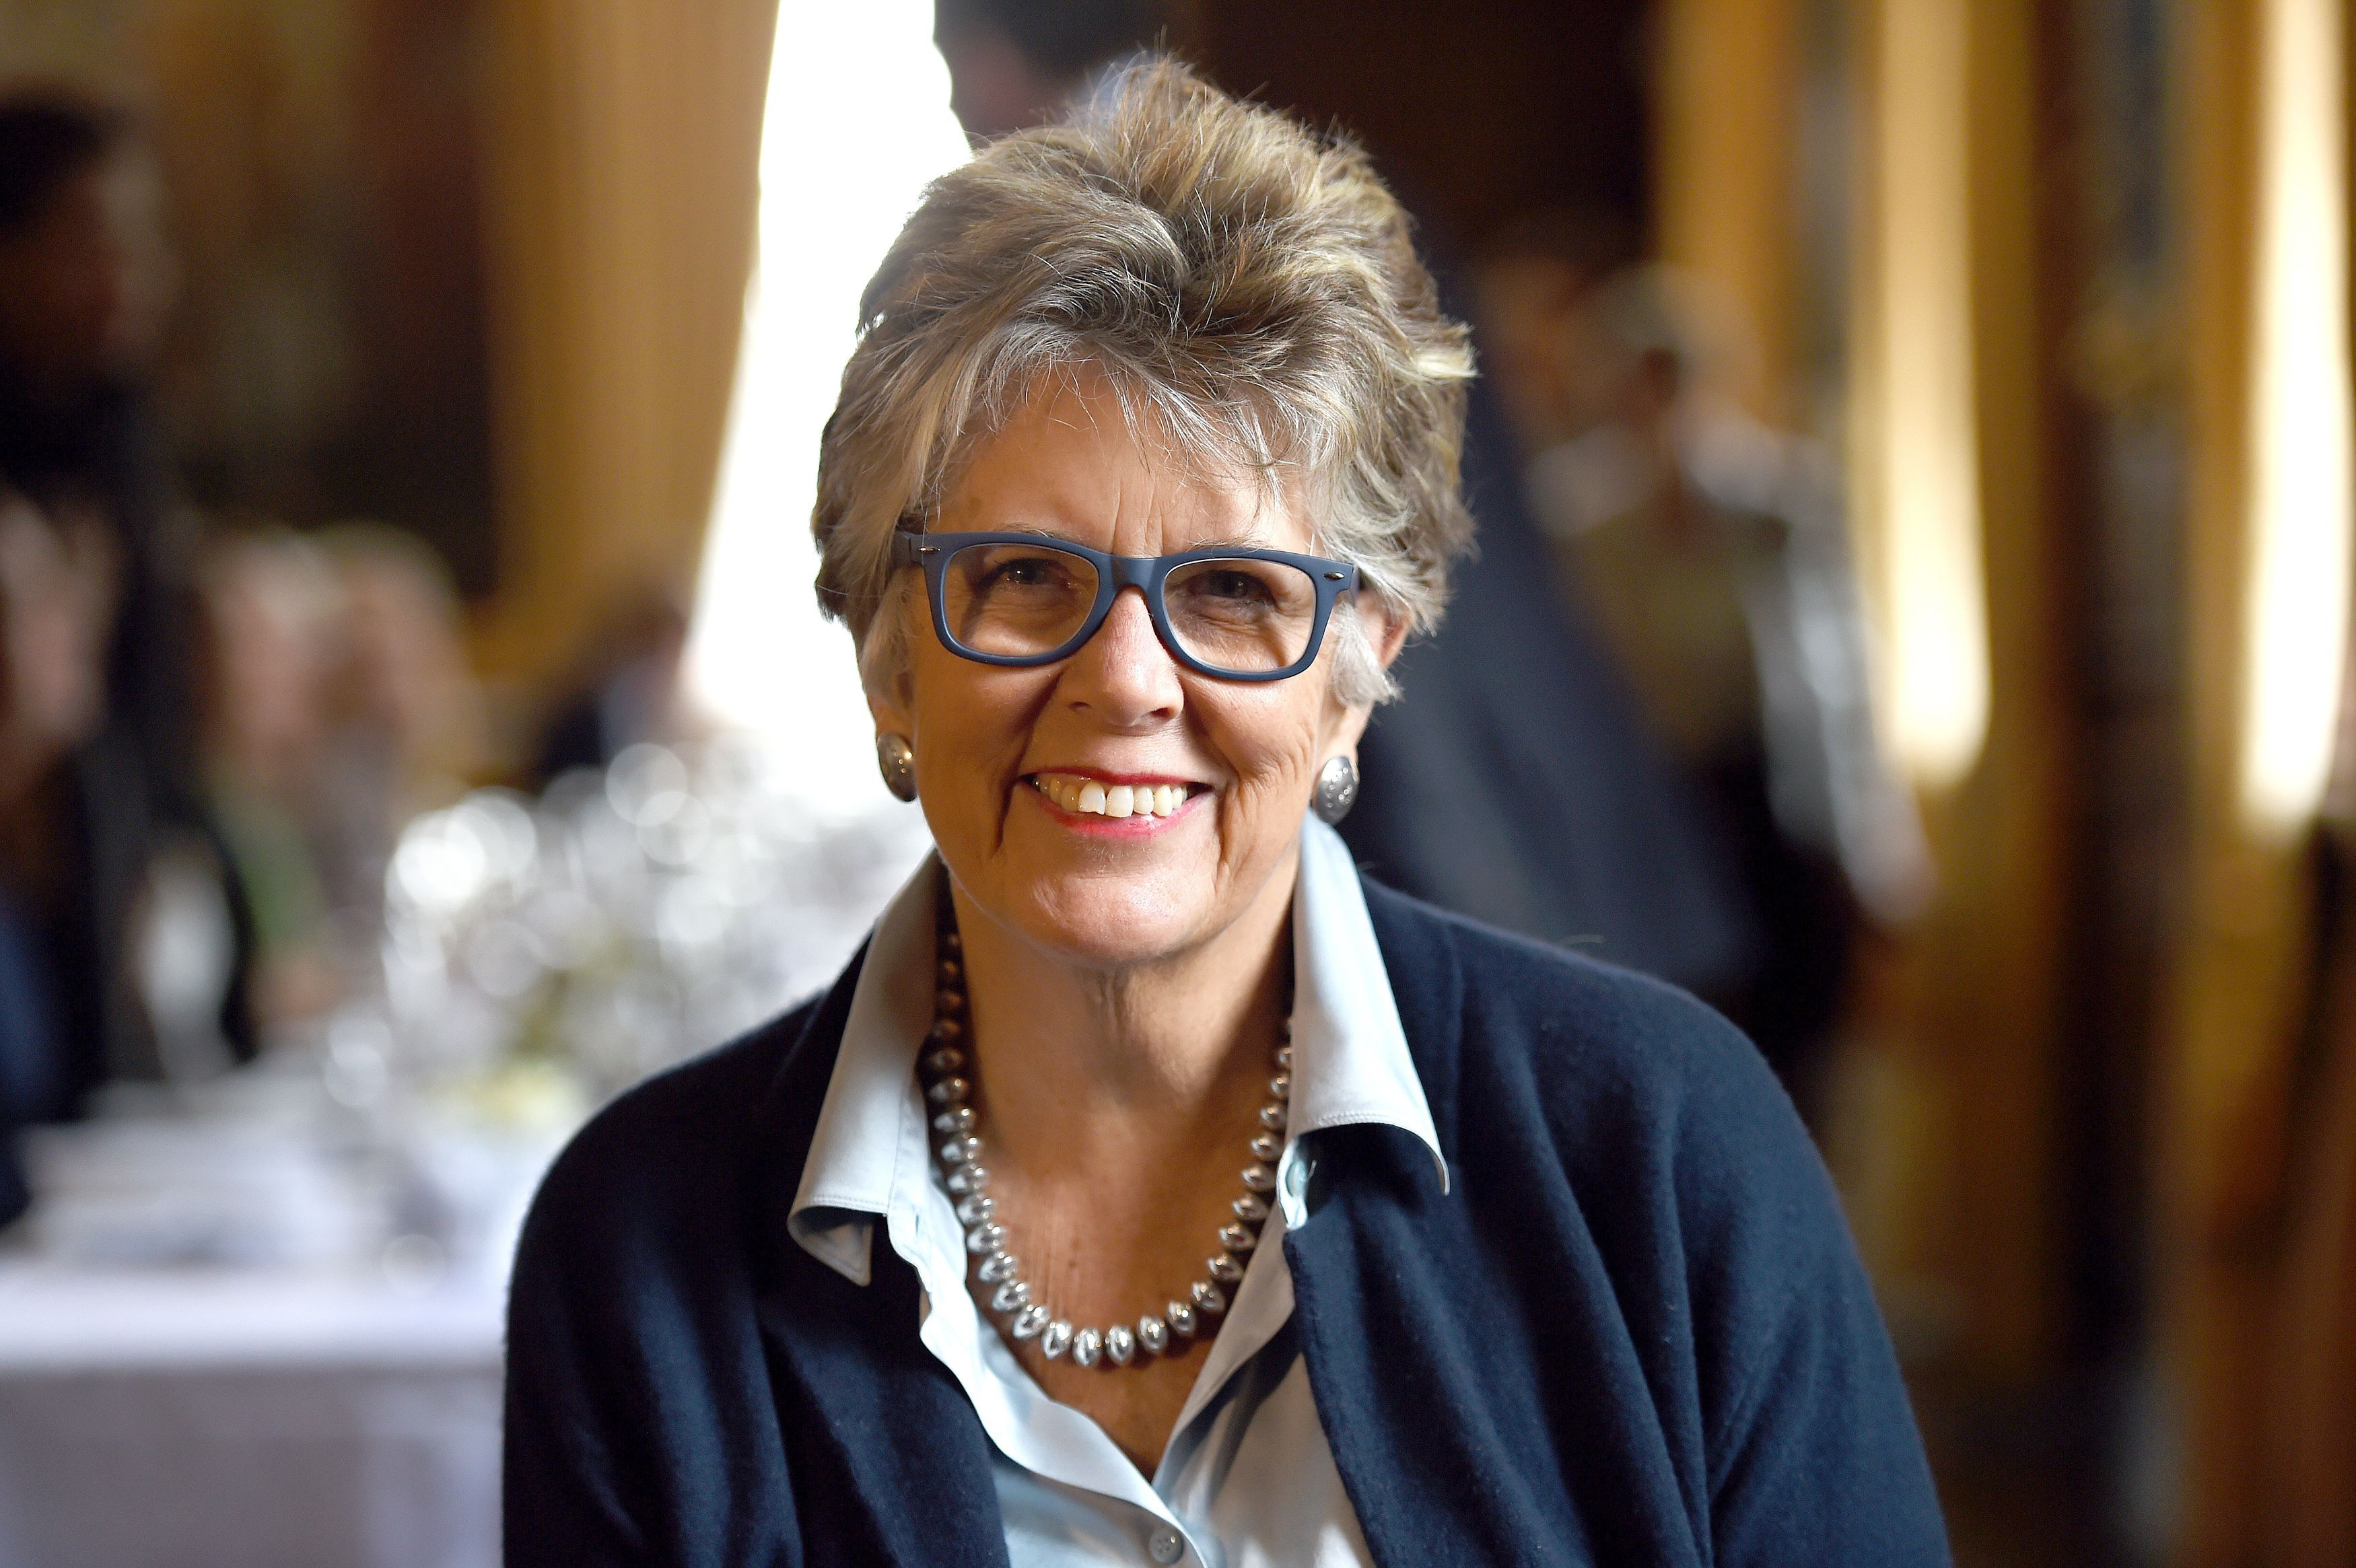 File photo dated 14/2/2017 of Prue Leith who has said the way she brought up her children would not be acceptable today.